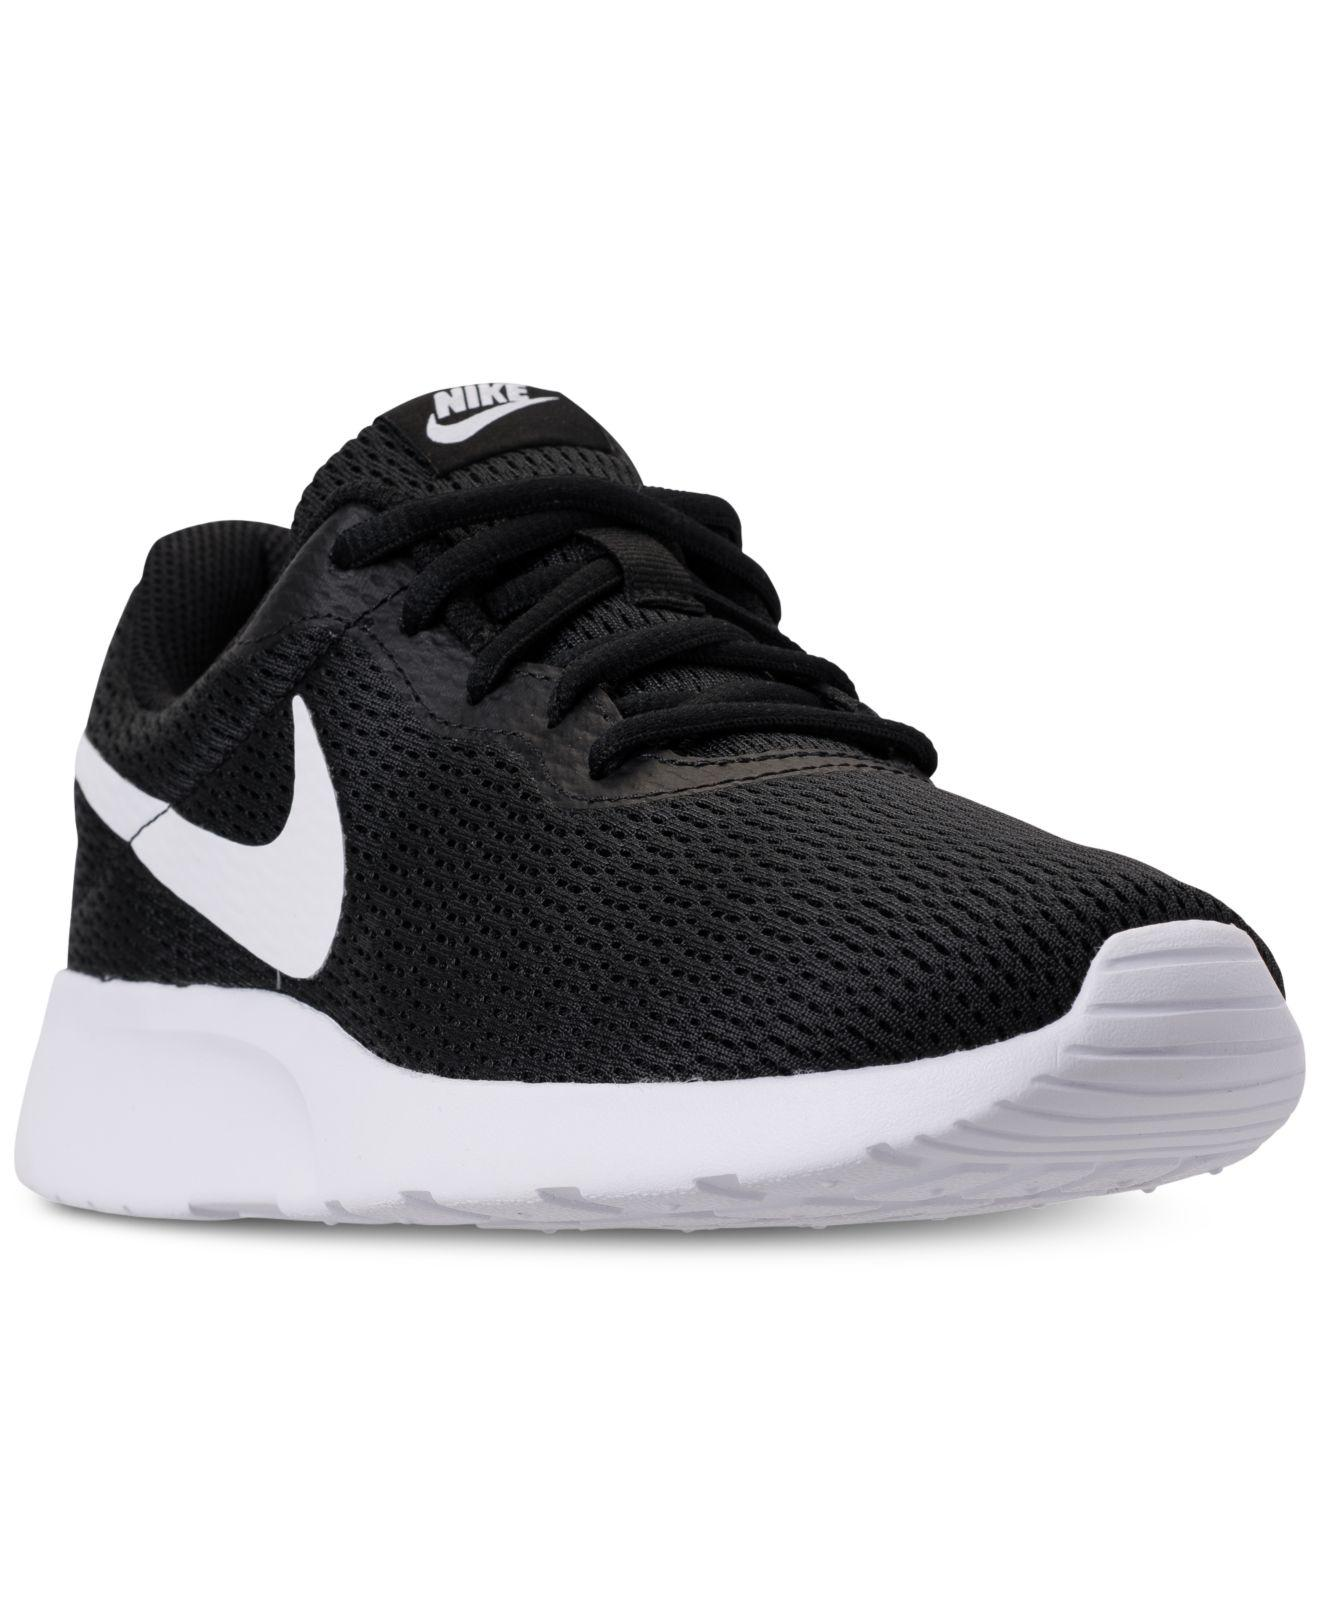 Nike Women's Tanjun Wide Width (2E) Casual Sneakers from Finish Line FAPRCT9Ct